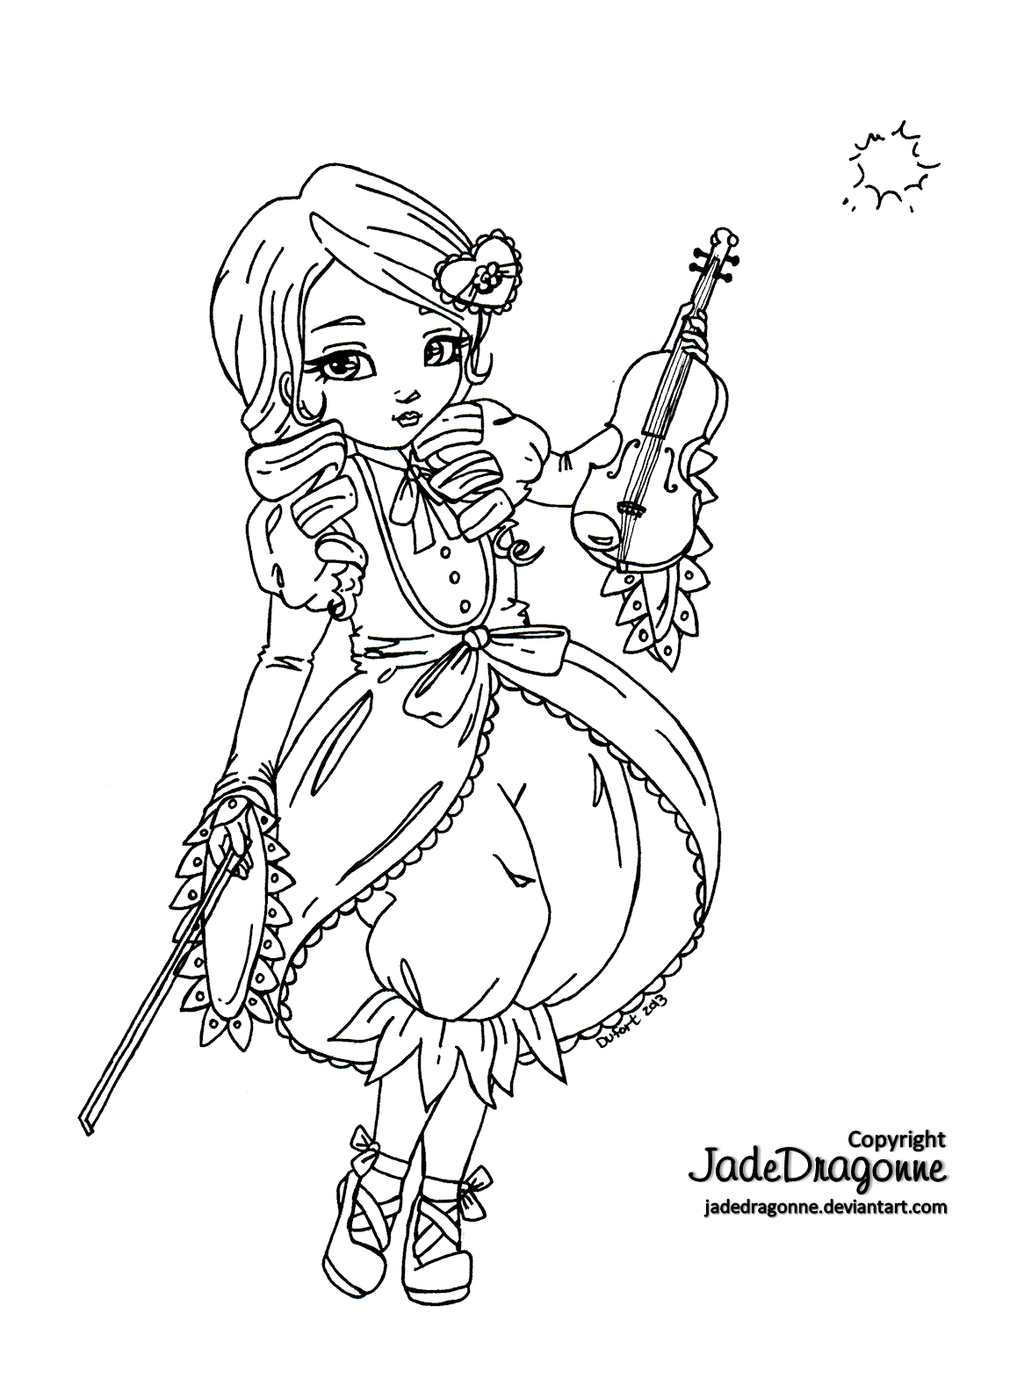 jadedragonne deviantart coloring pages - photo#15